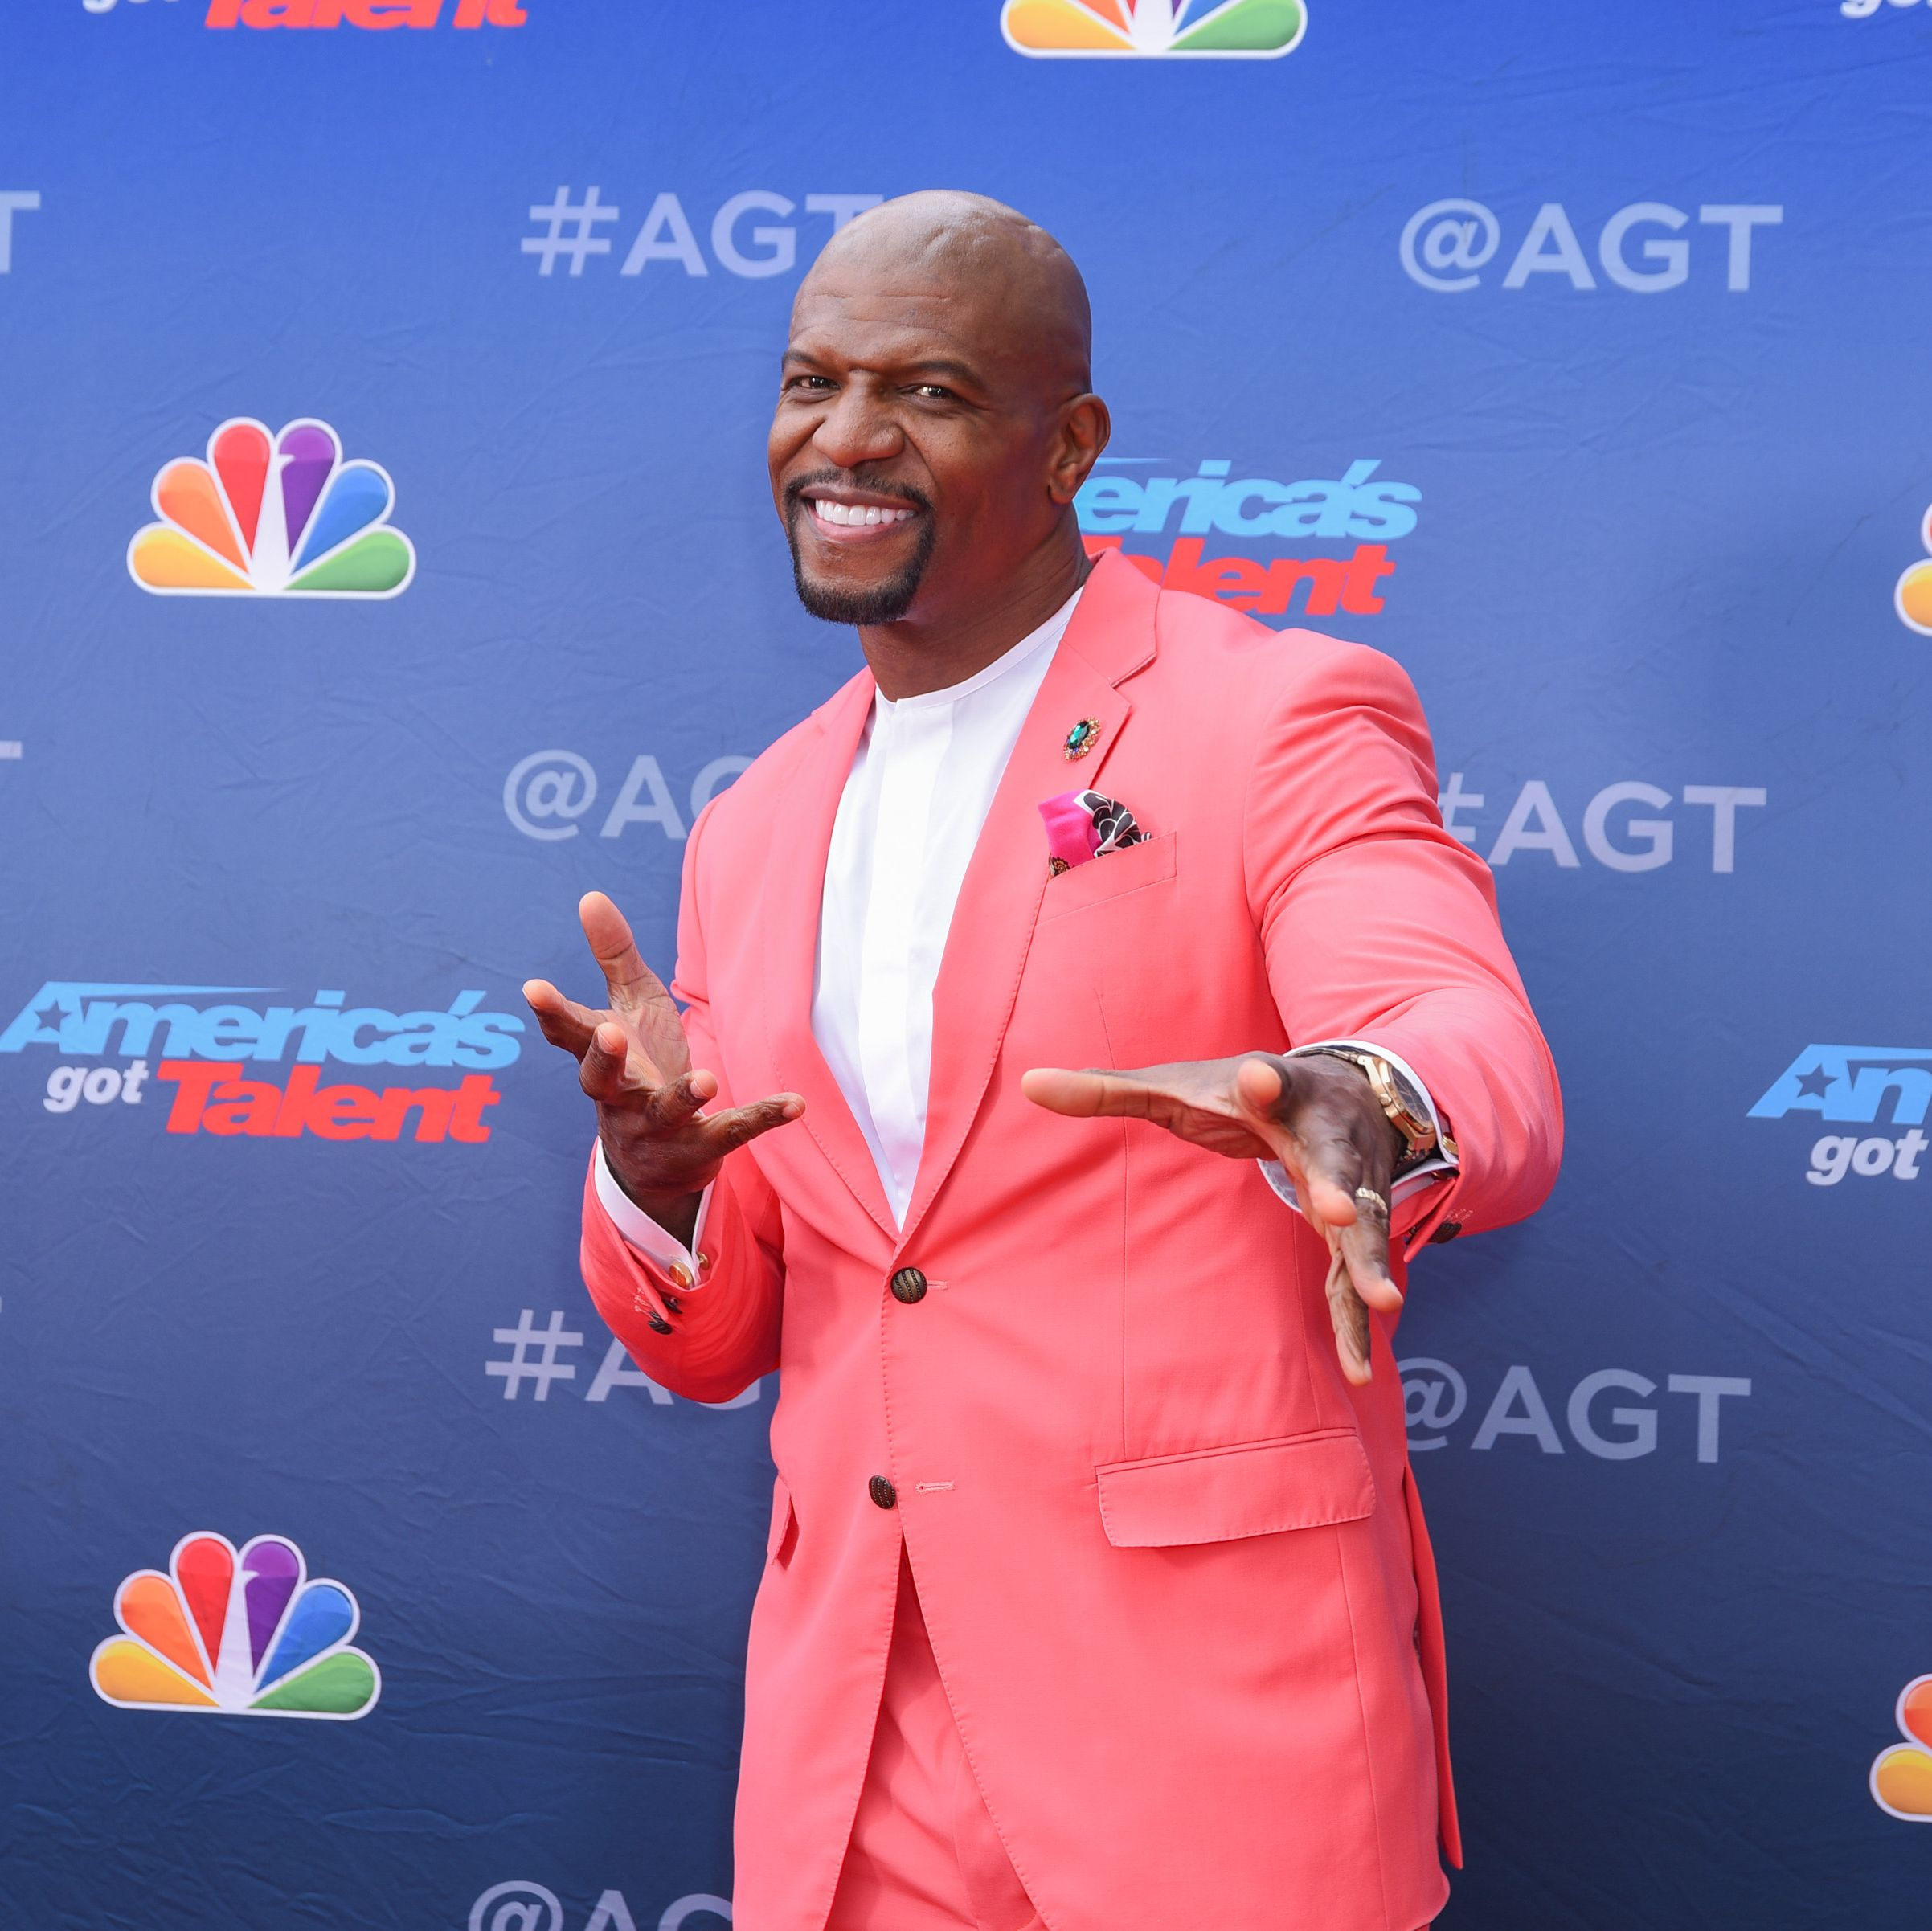 White Chicks 2 Is 'Going to Happen,' According to Terry Crews